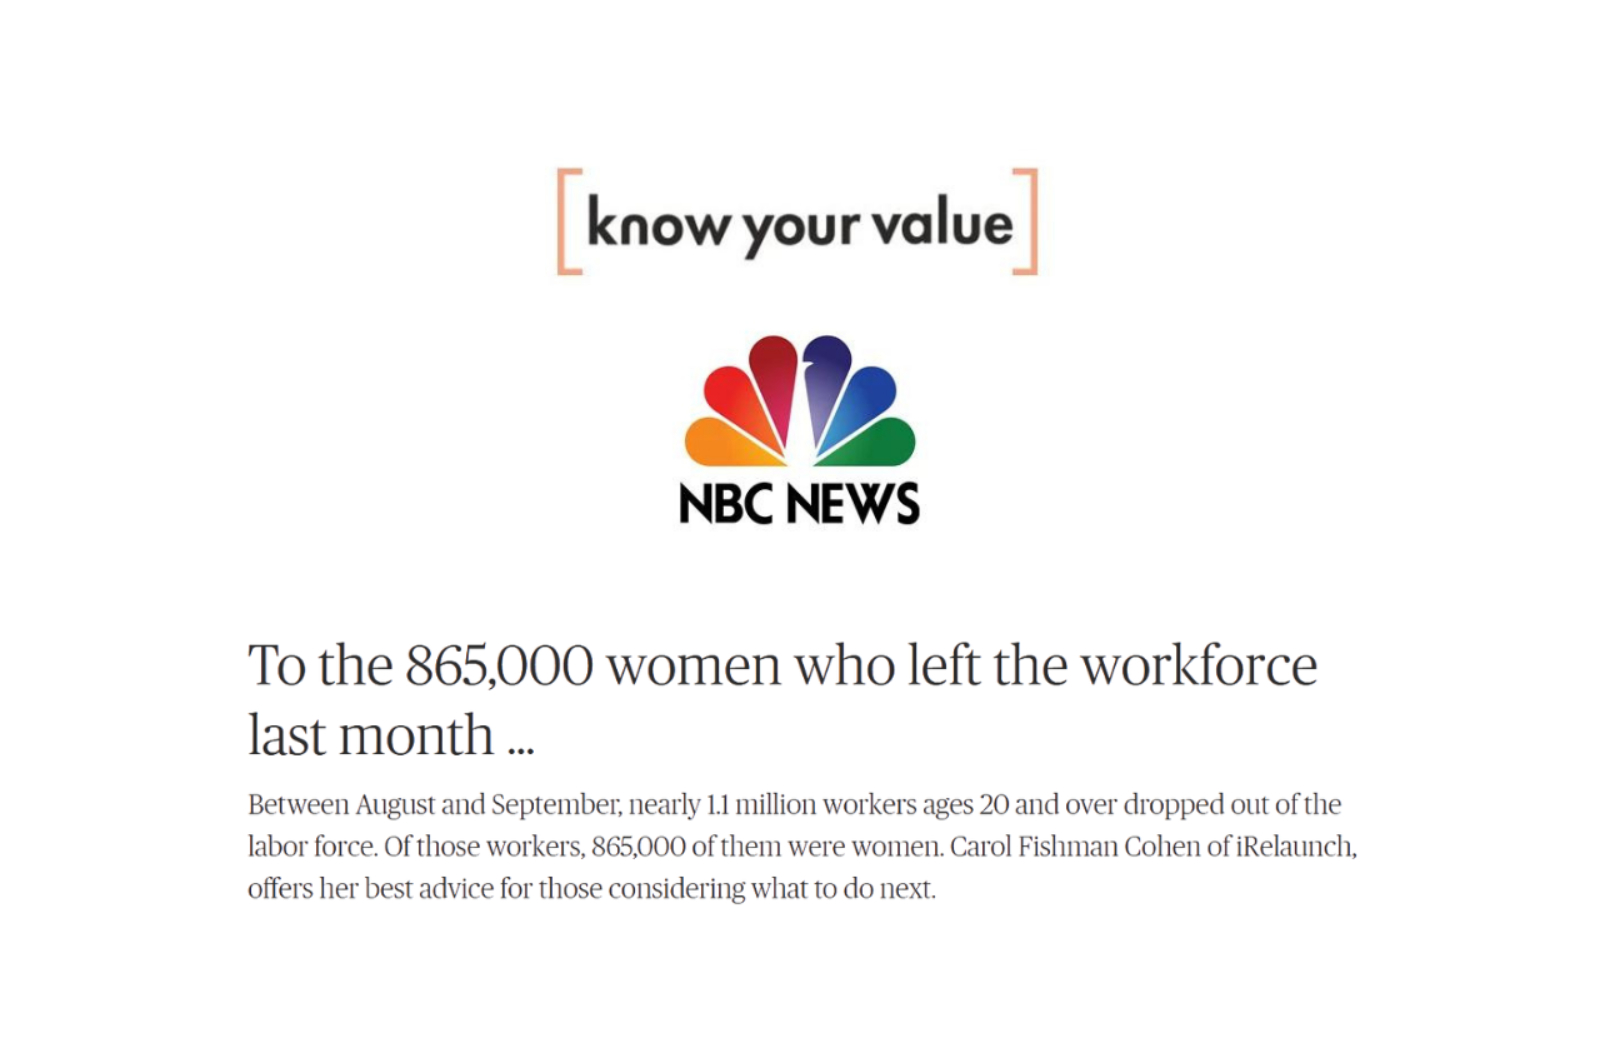 Know Your Value To the 865000 Women Who Left Workforce news thumbnail